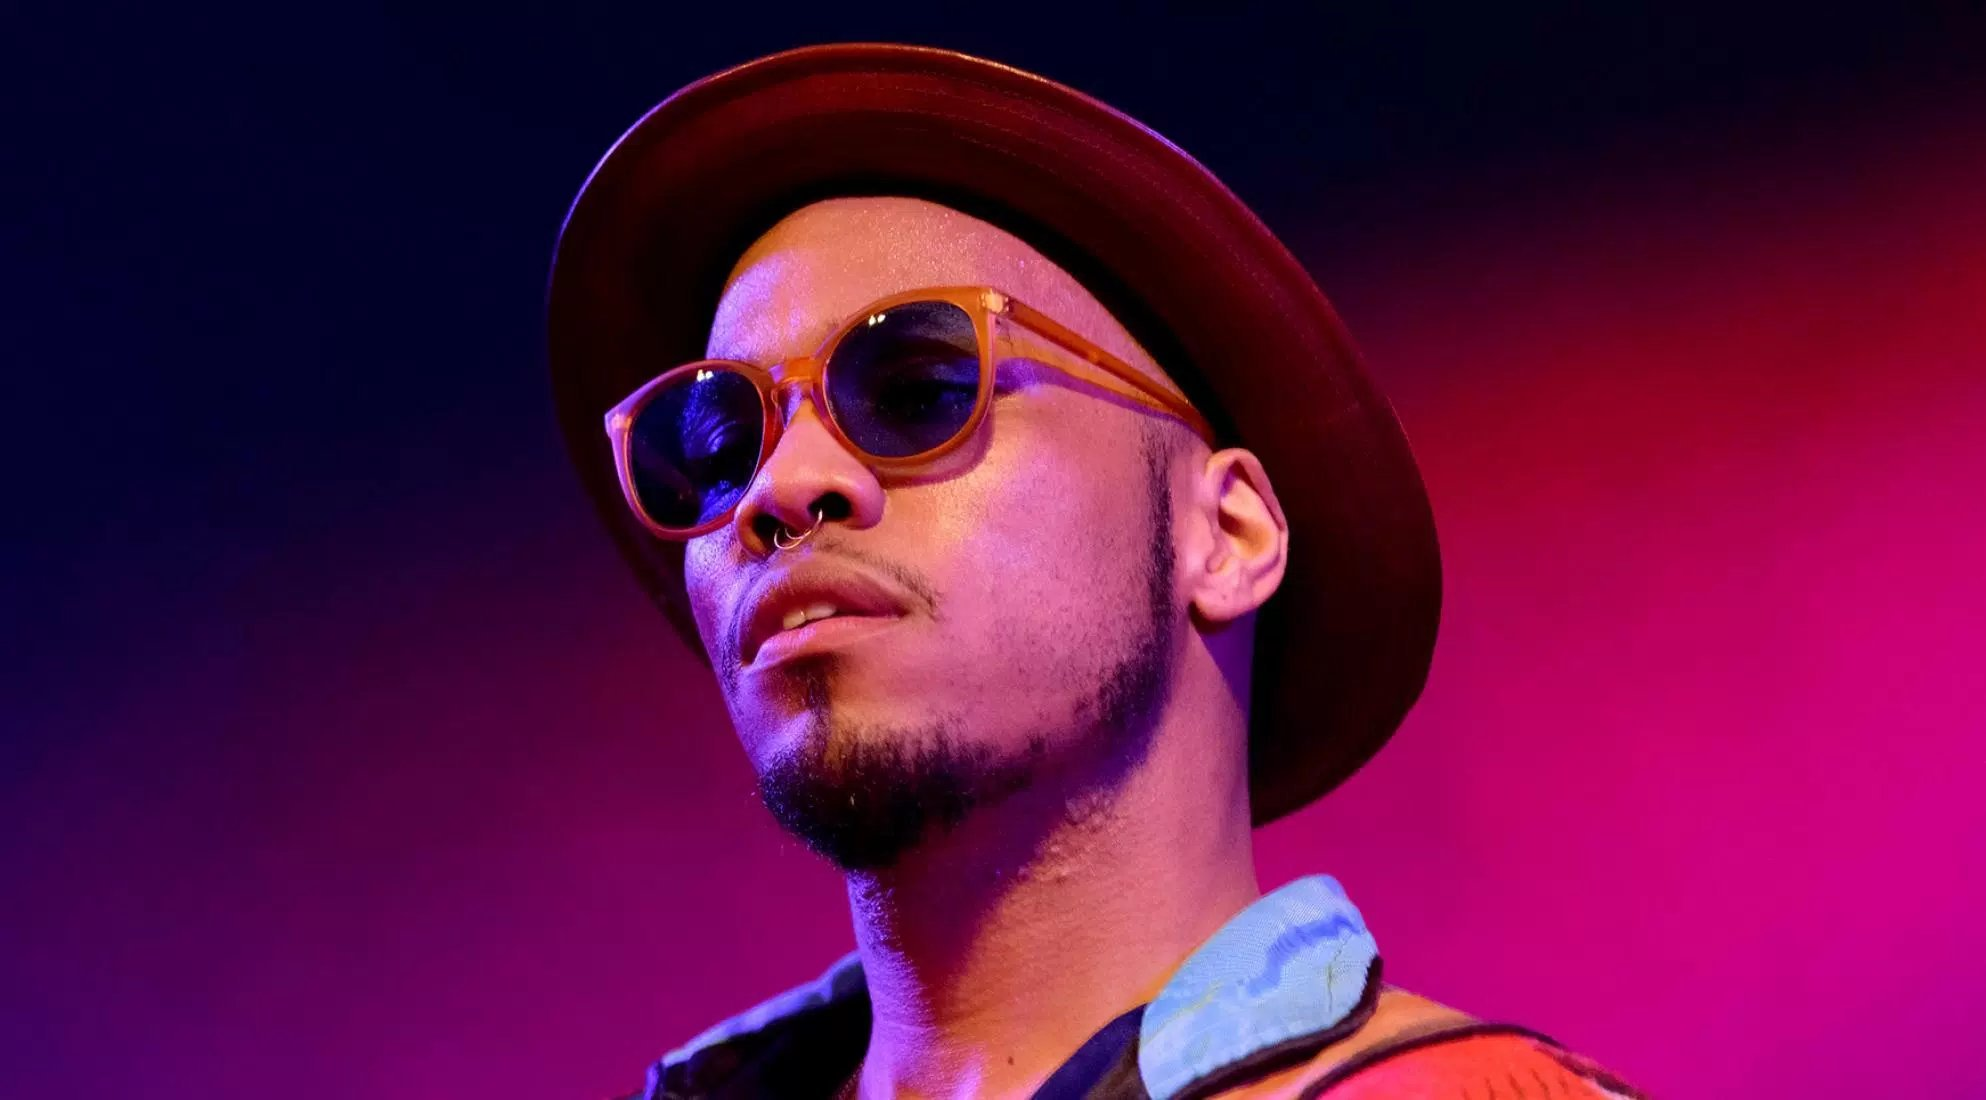 Anderson .Paak has announce that his new album 'Ventura,' will be released on April 12th. The album follows his recently released full-length 'Oxnard.'